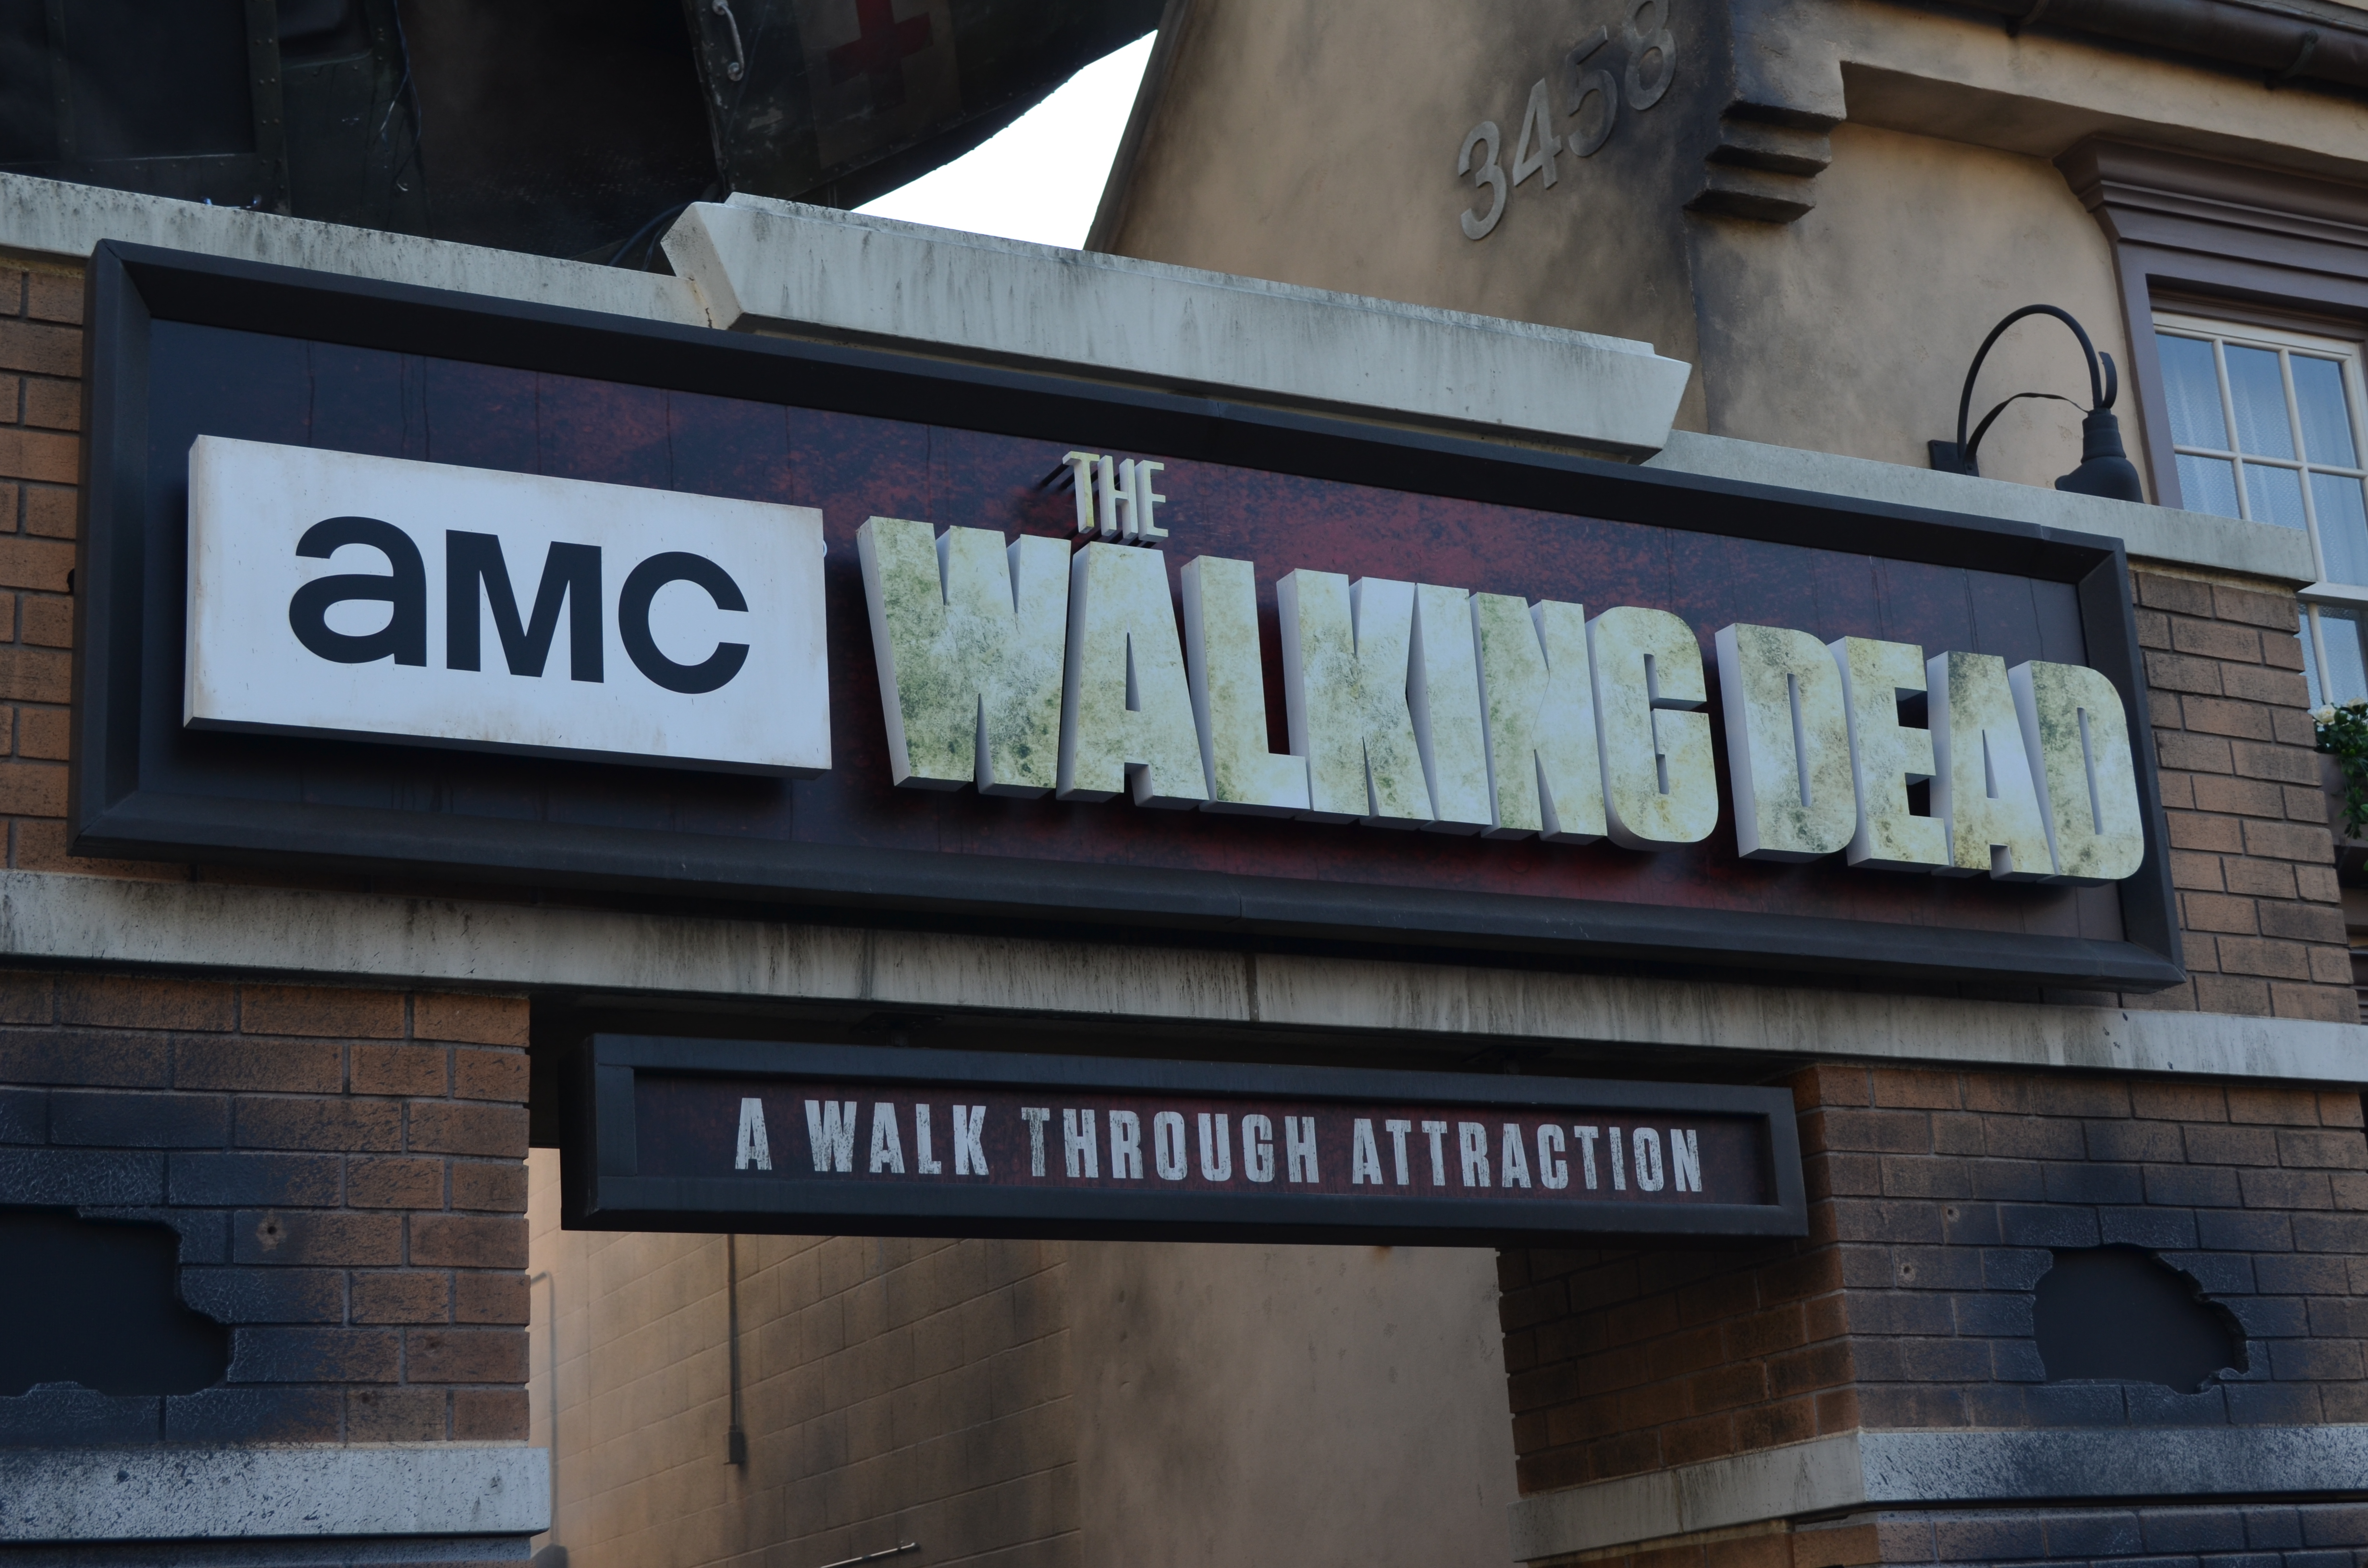 the walking dead Universal Studio Hollwood